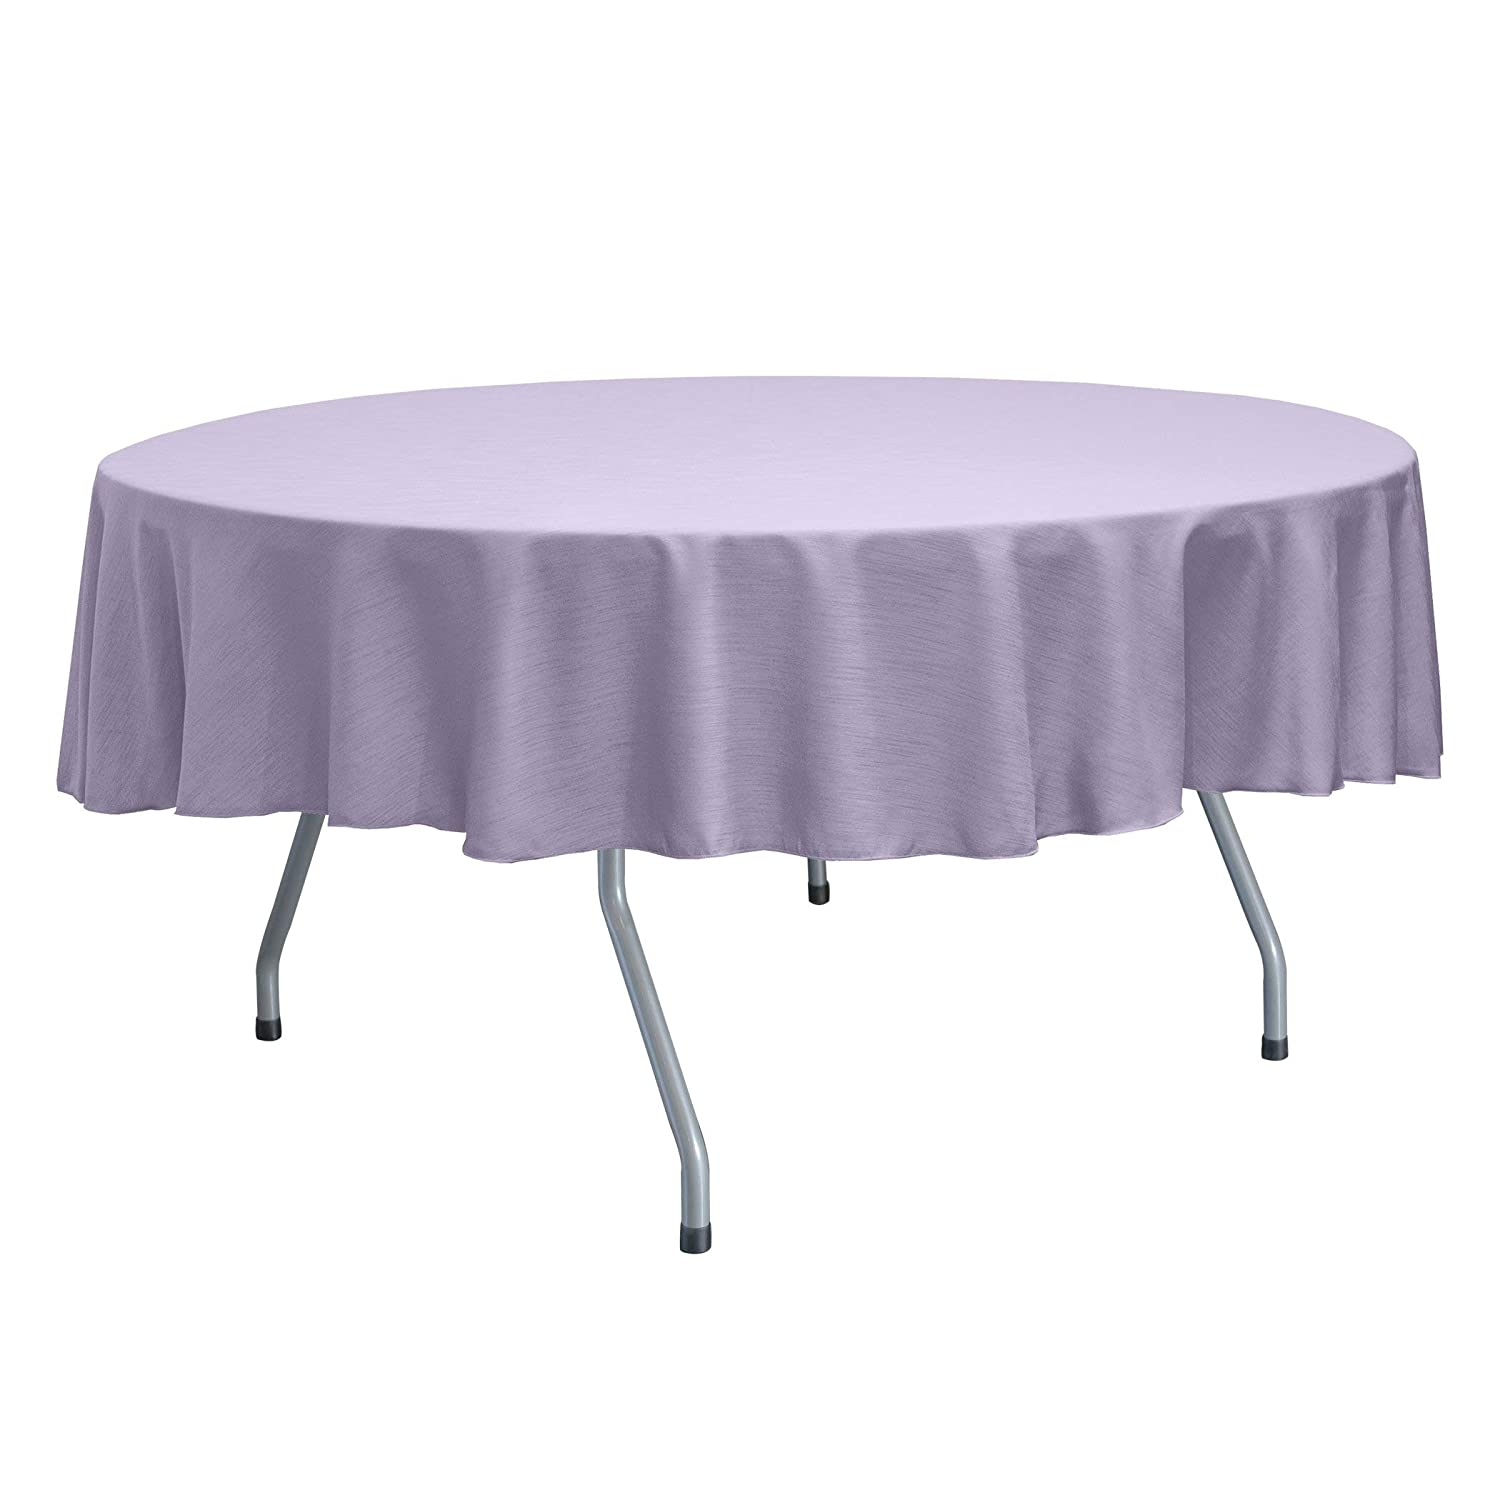 Ultimate Textile Reversible Shantung Satin - Majestic 60-Inch Round Tablecloth - Fits Tables Smaller Than 60-Inches in Diameter, Lilac Light Purple